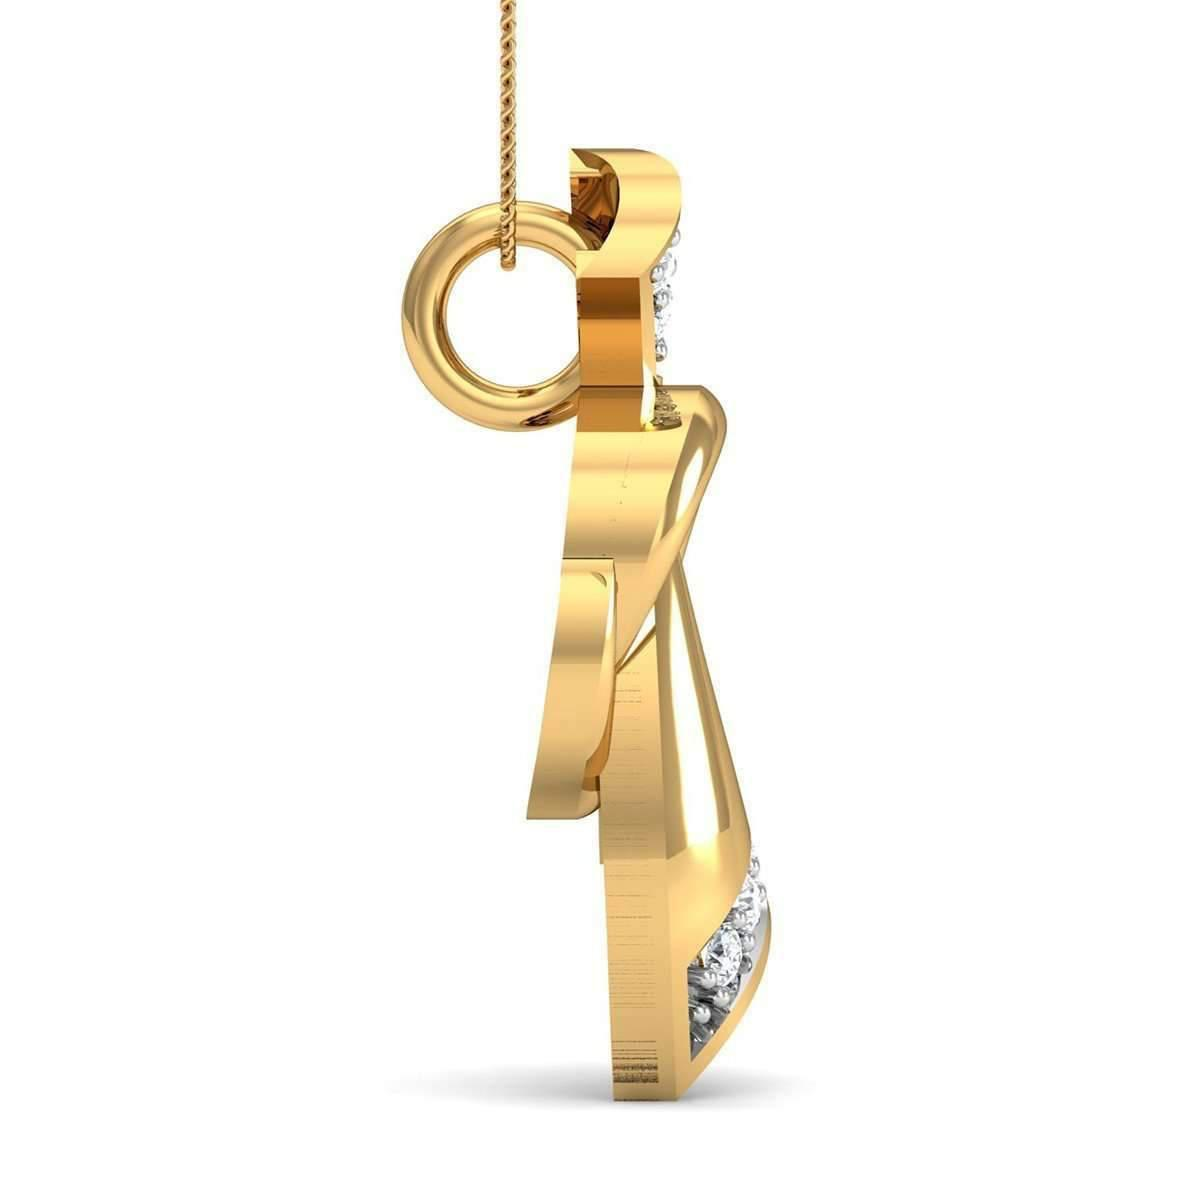 Diamoire Jewels Pave Set 7 Diamond Pendant Inspired by Nature in 10kt Rose Gold wwMGyKI